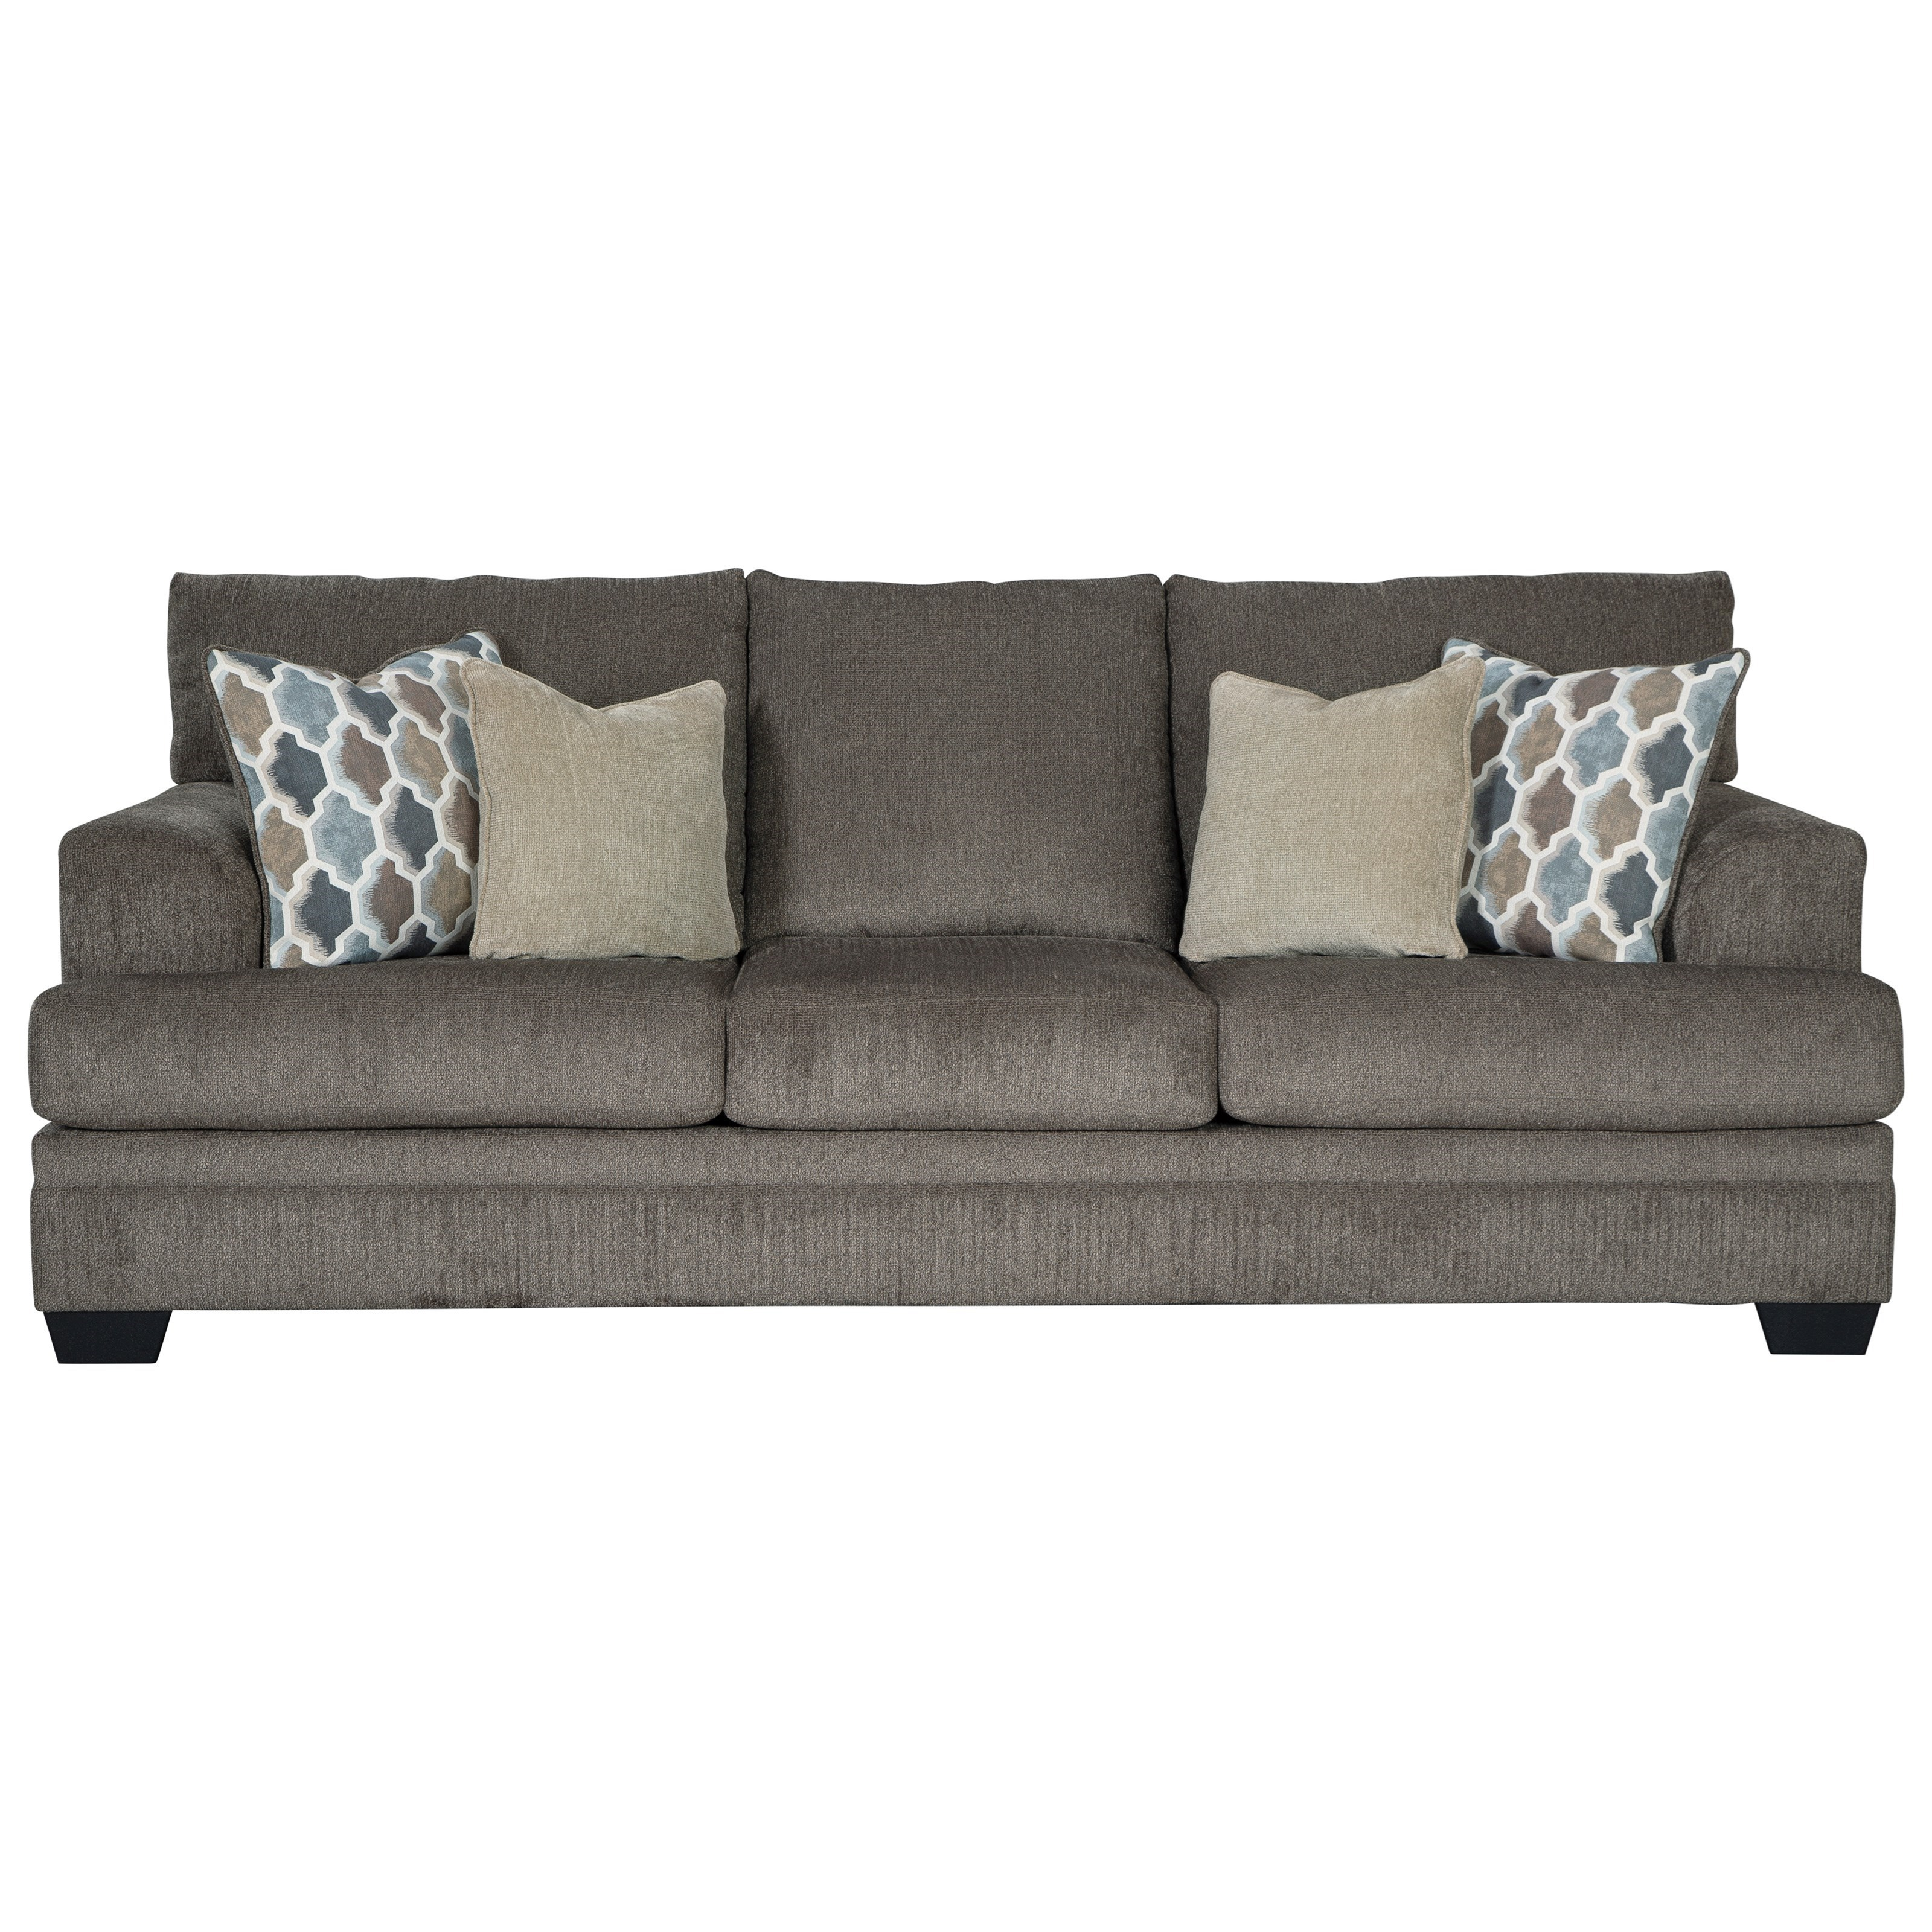 Dorsten Sofa by Signature Design at Fisher Home Furnishings